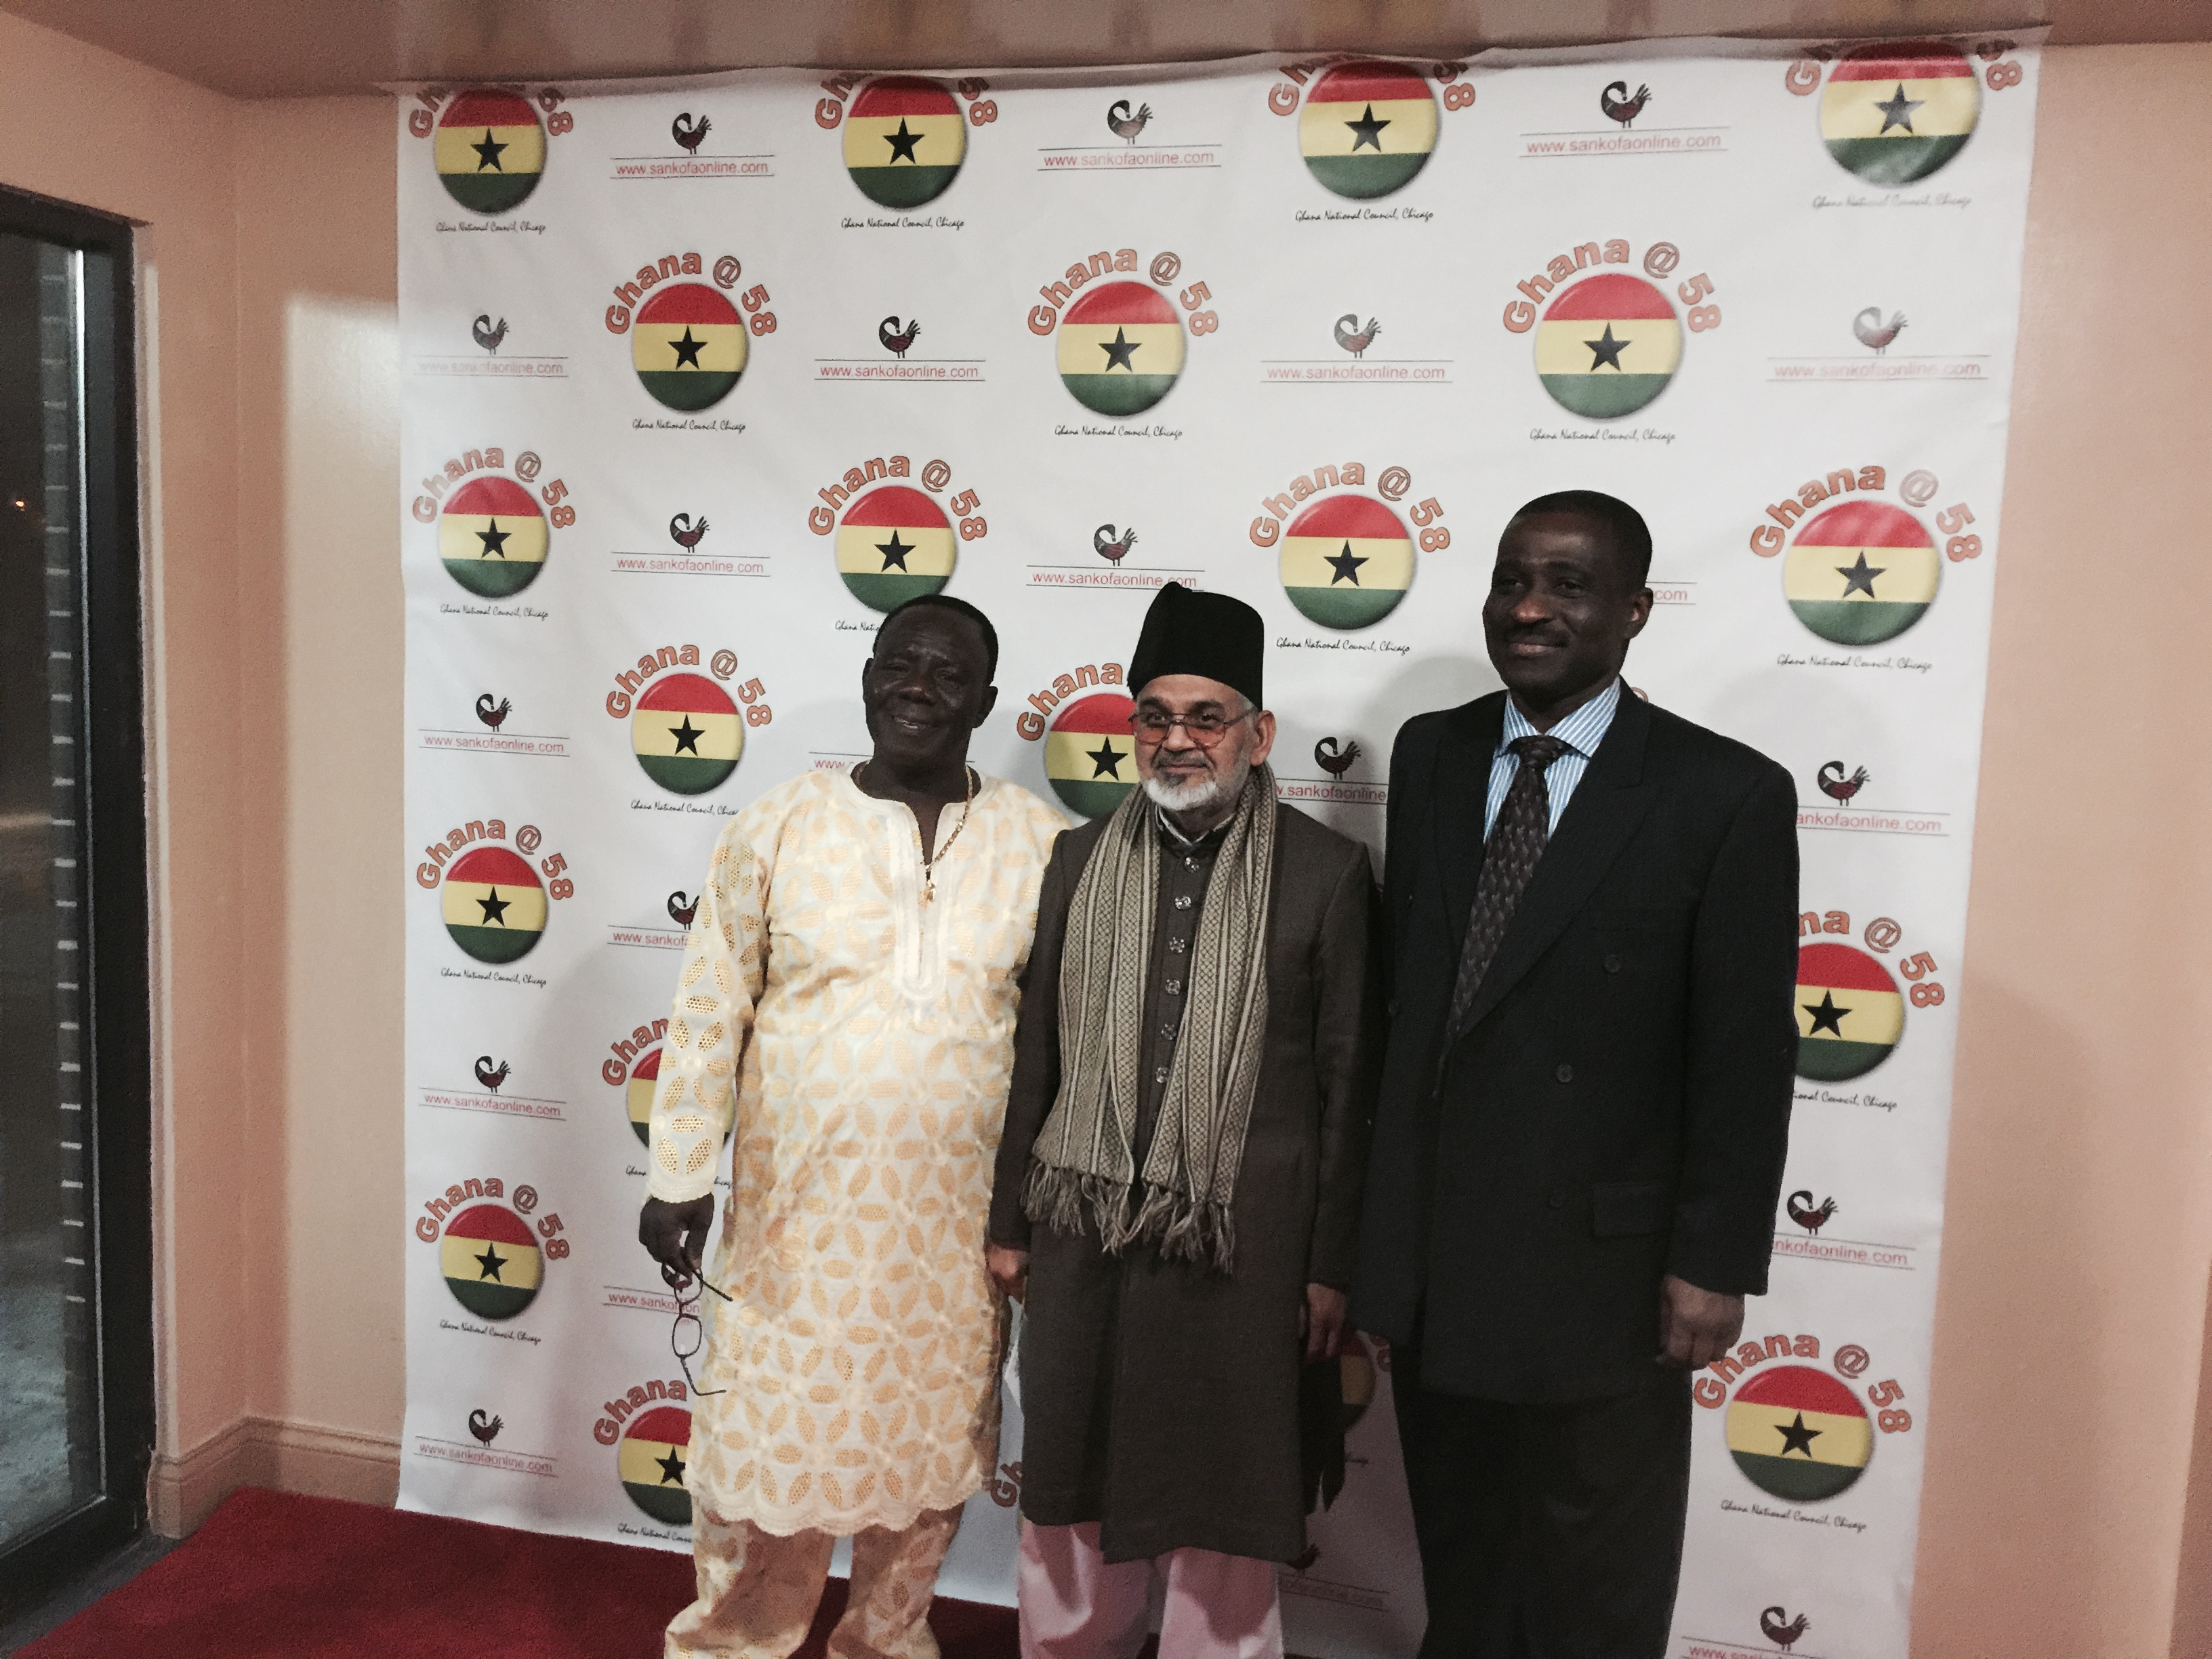 Ghana national council of chicago - Photos The President R And General Secretary L Of Ghana National